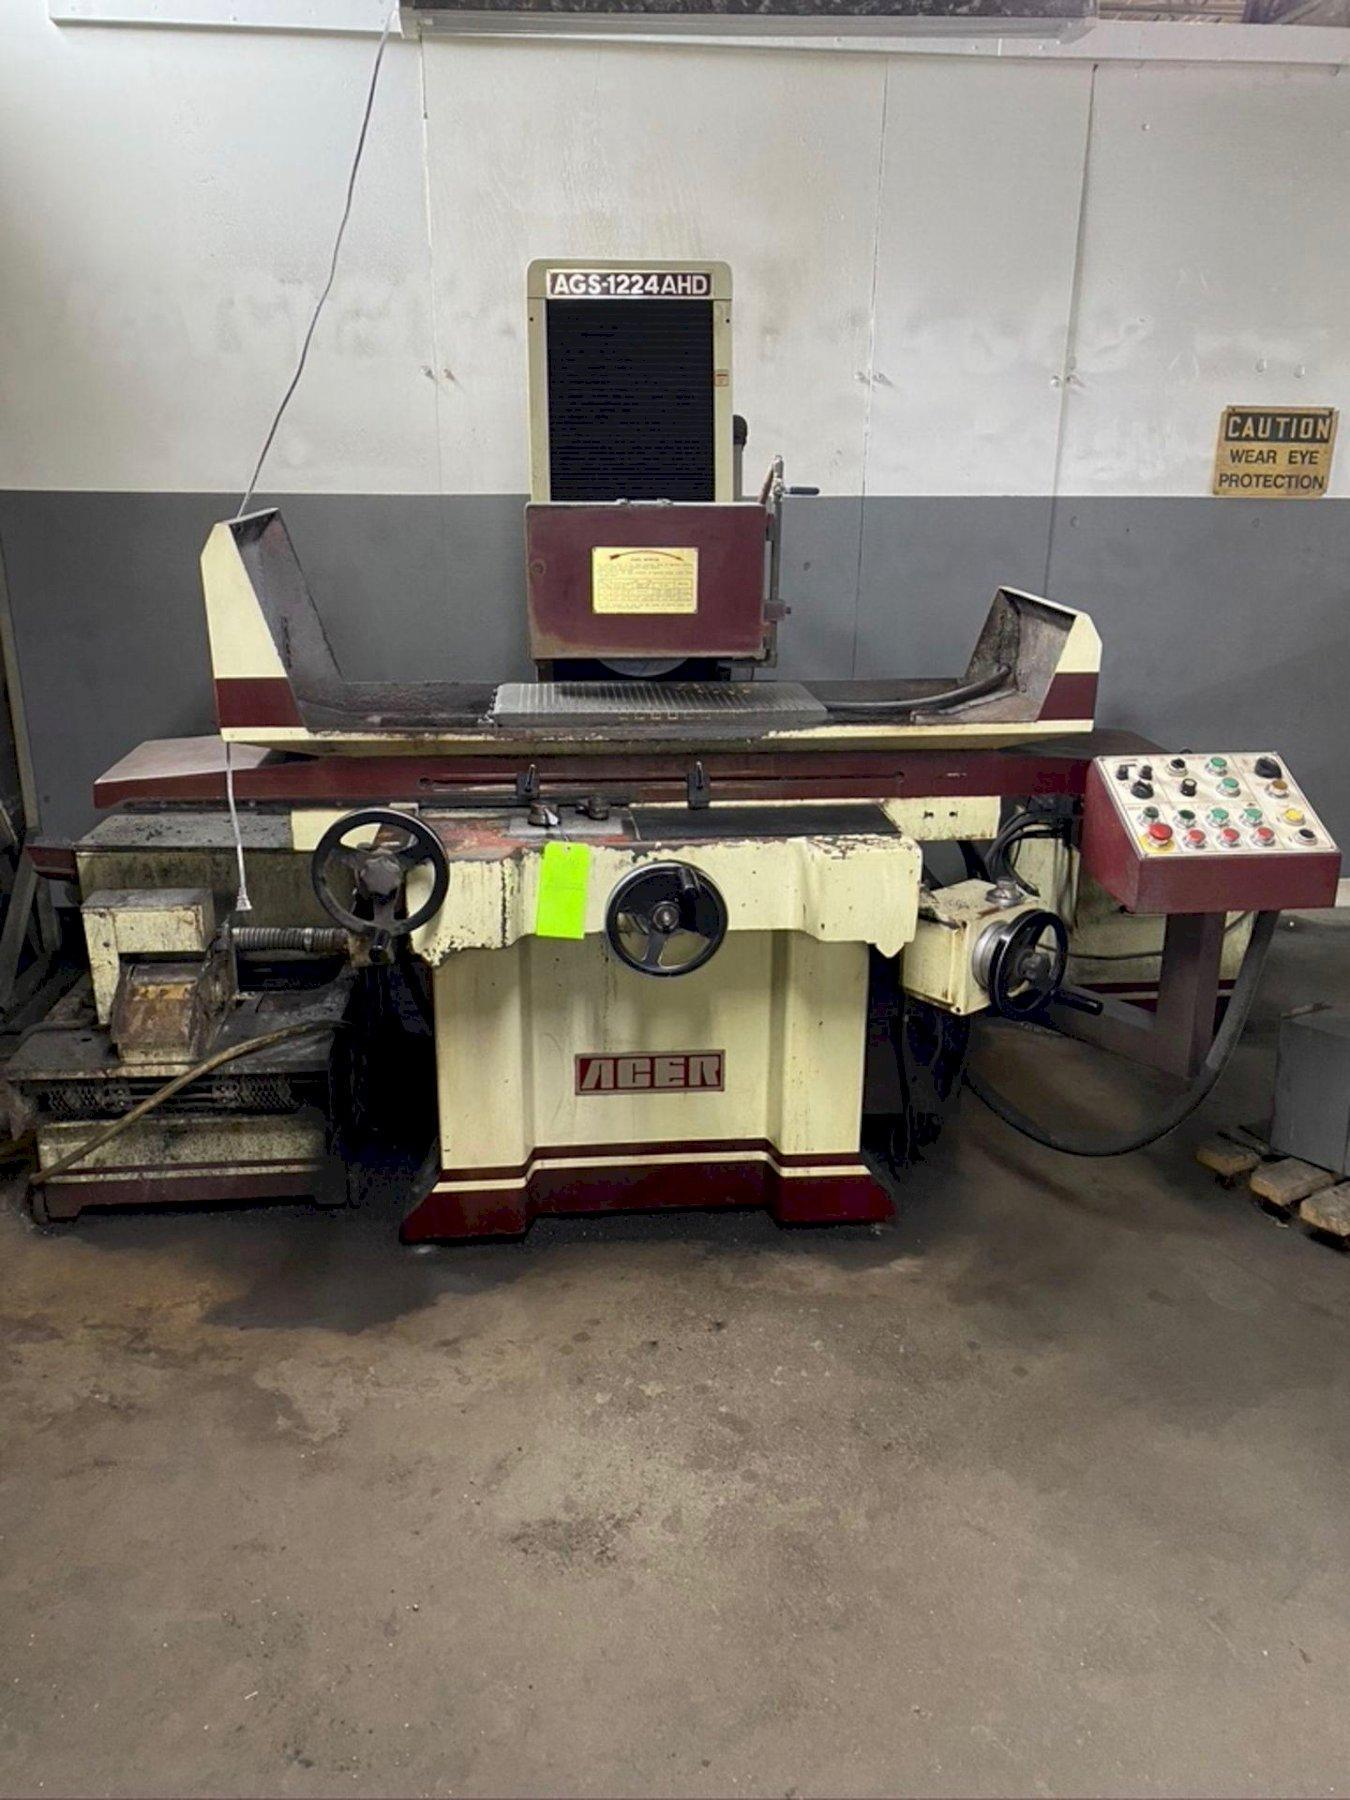 "12"" x 24"" Acer Model AGS-1224 AHD, Hydraulic Surface Srinder, Electro Magnetic Chuck, Hyd Table, Coolant Tank, Year 2005"